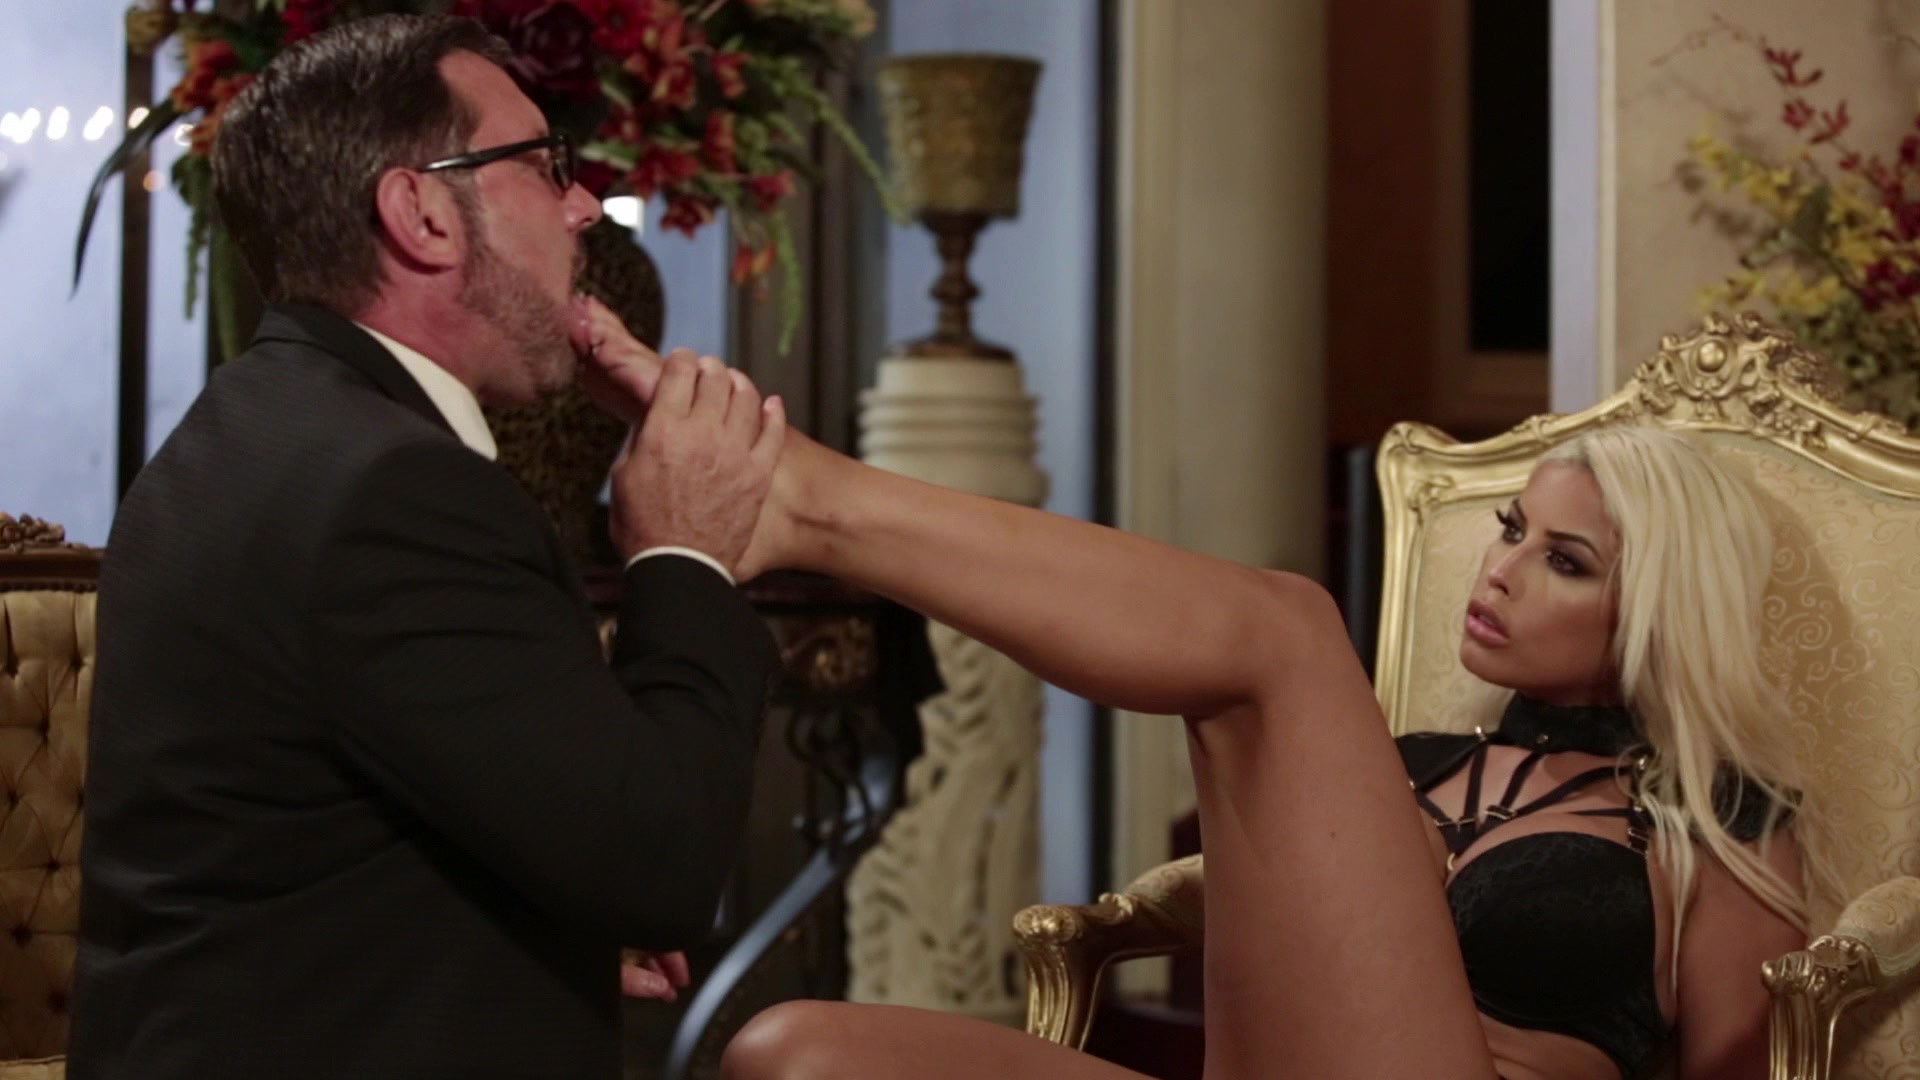 Scene with Jessica Drake - image 13 out of 20